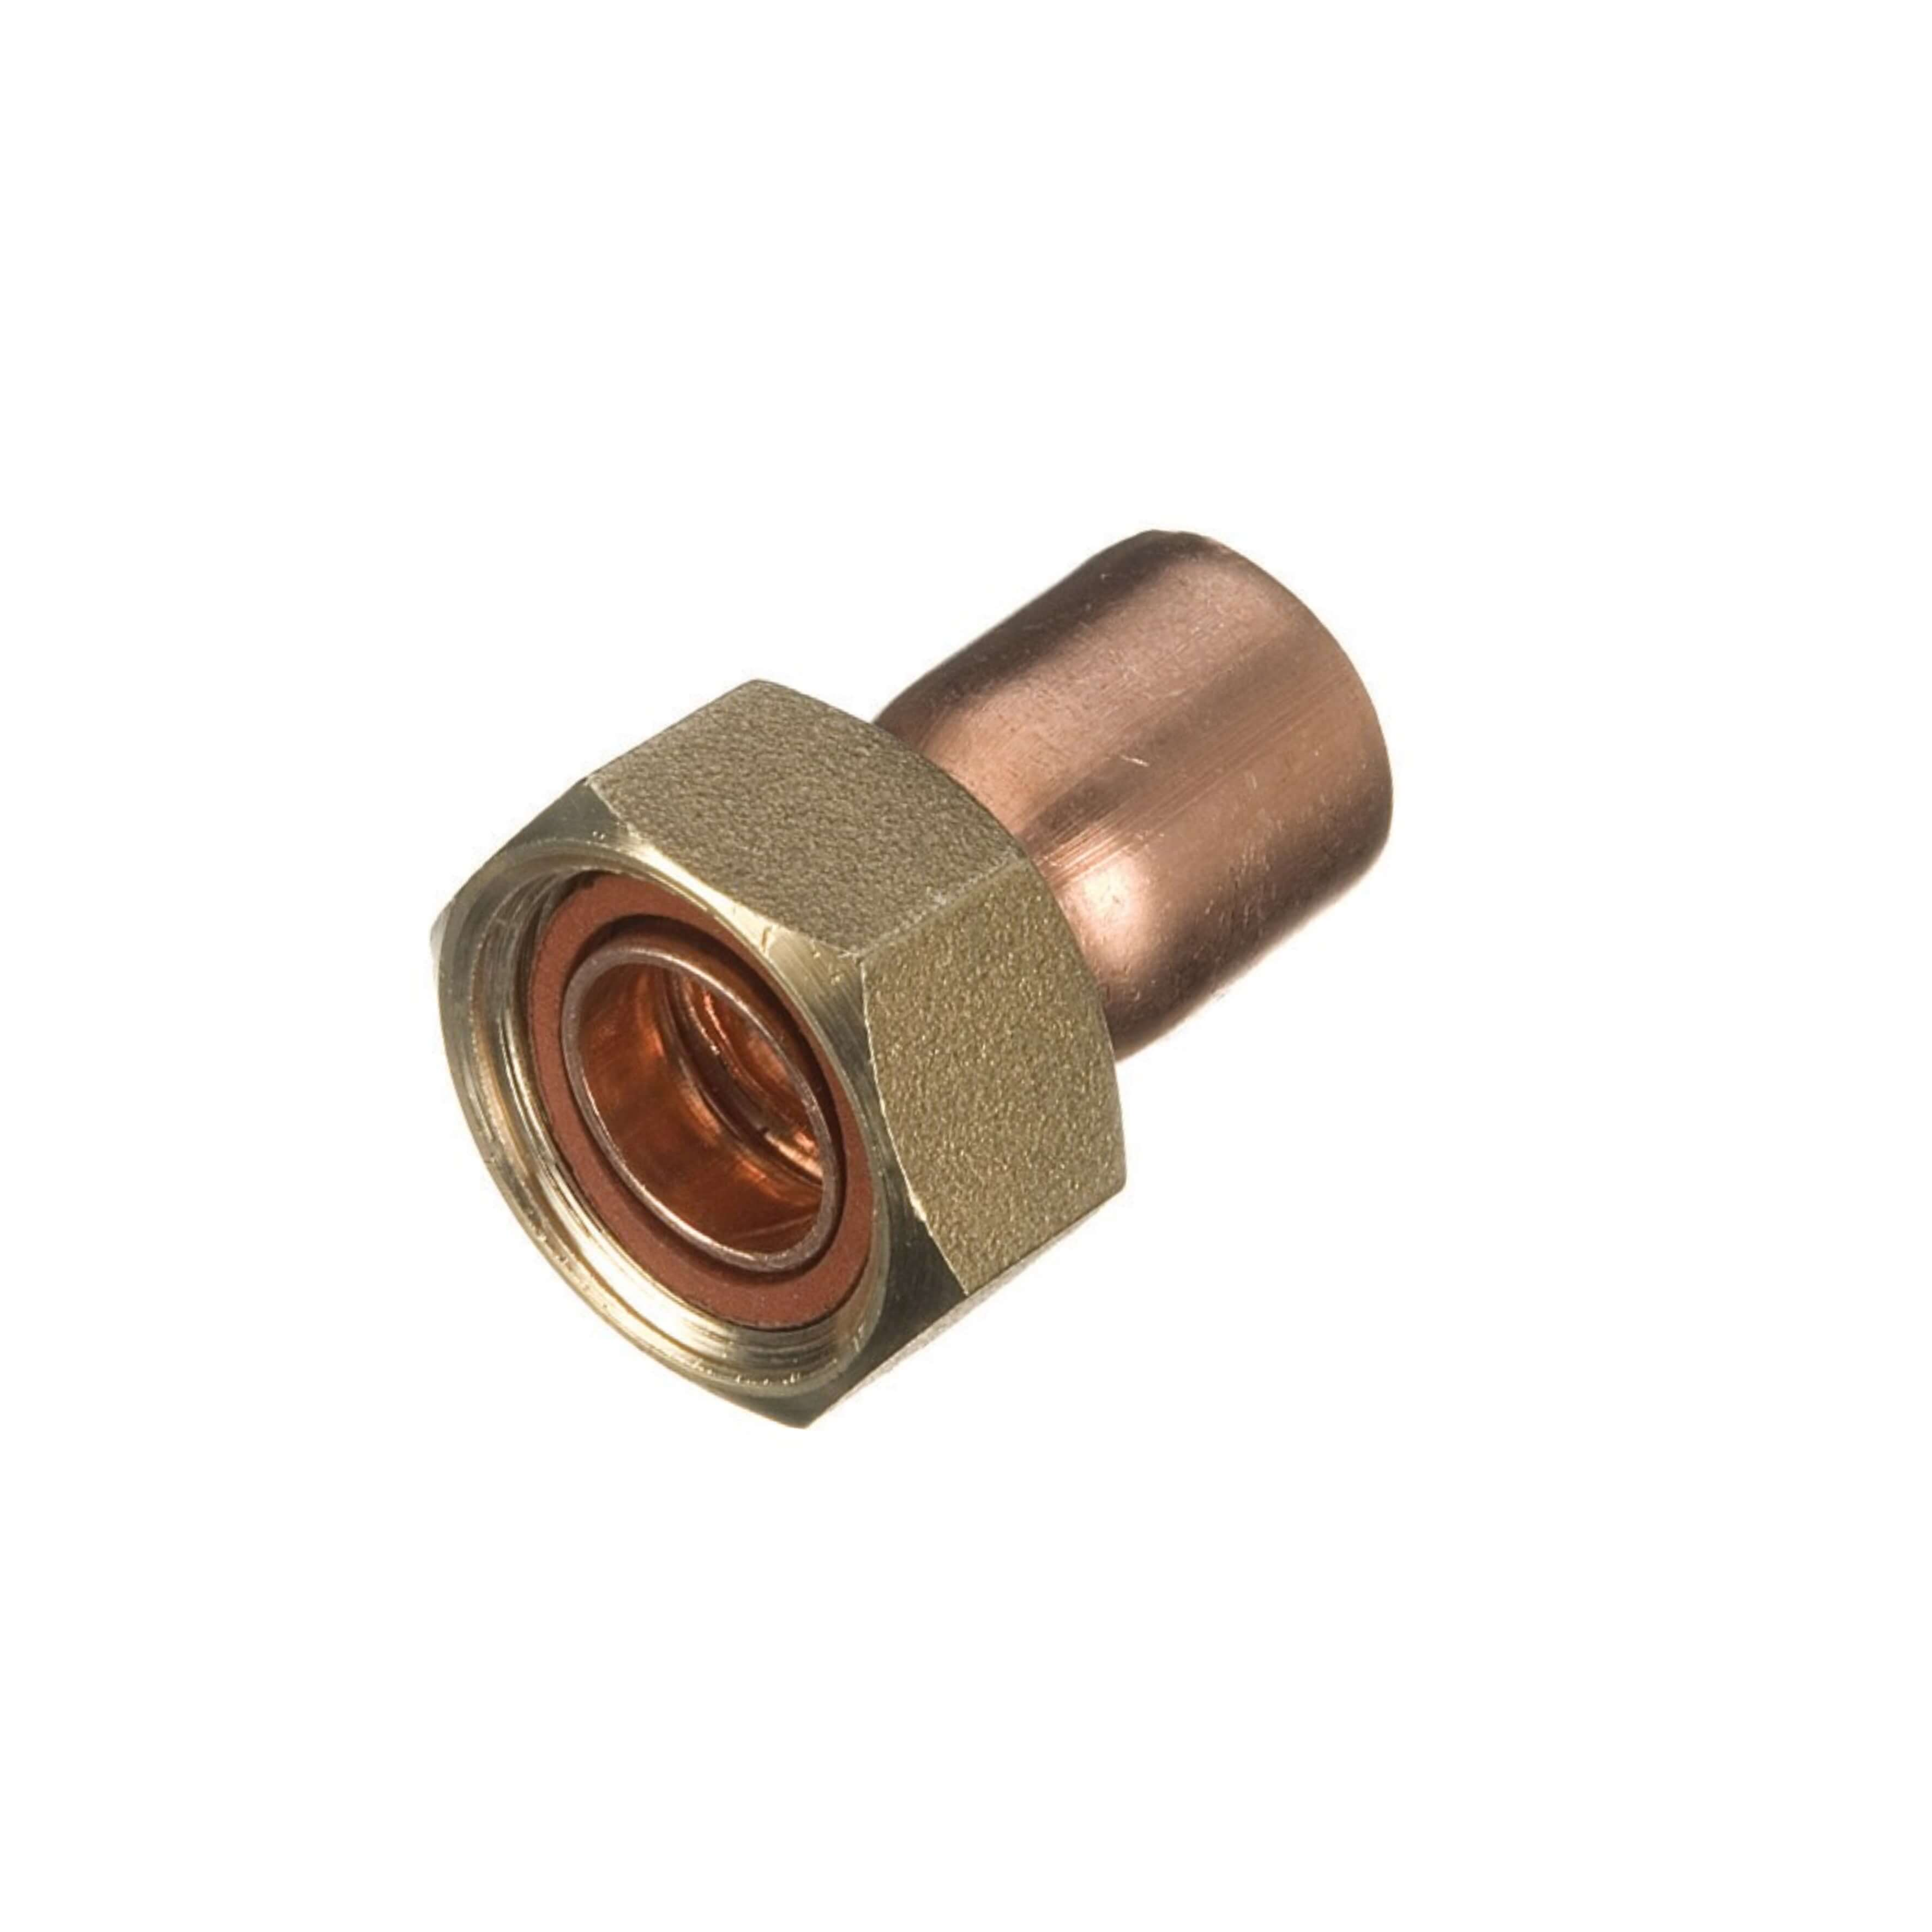 15mm End Feed Straight Tap Connector